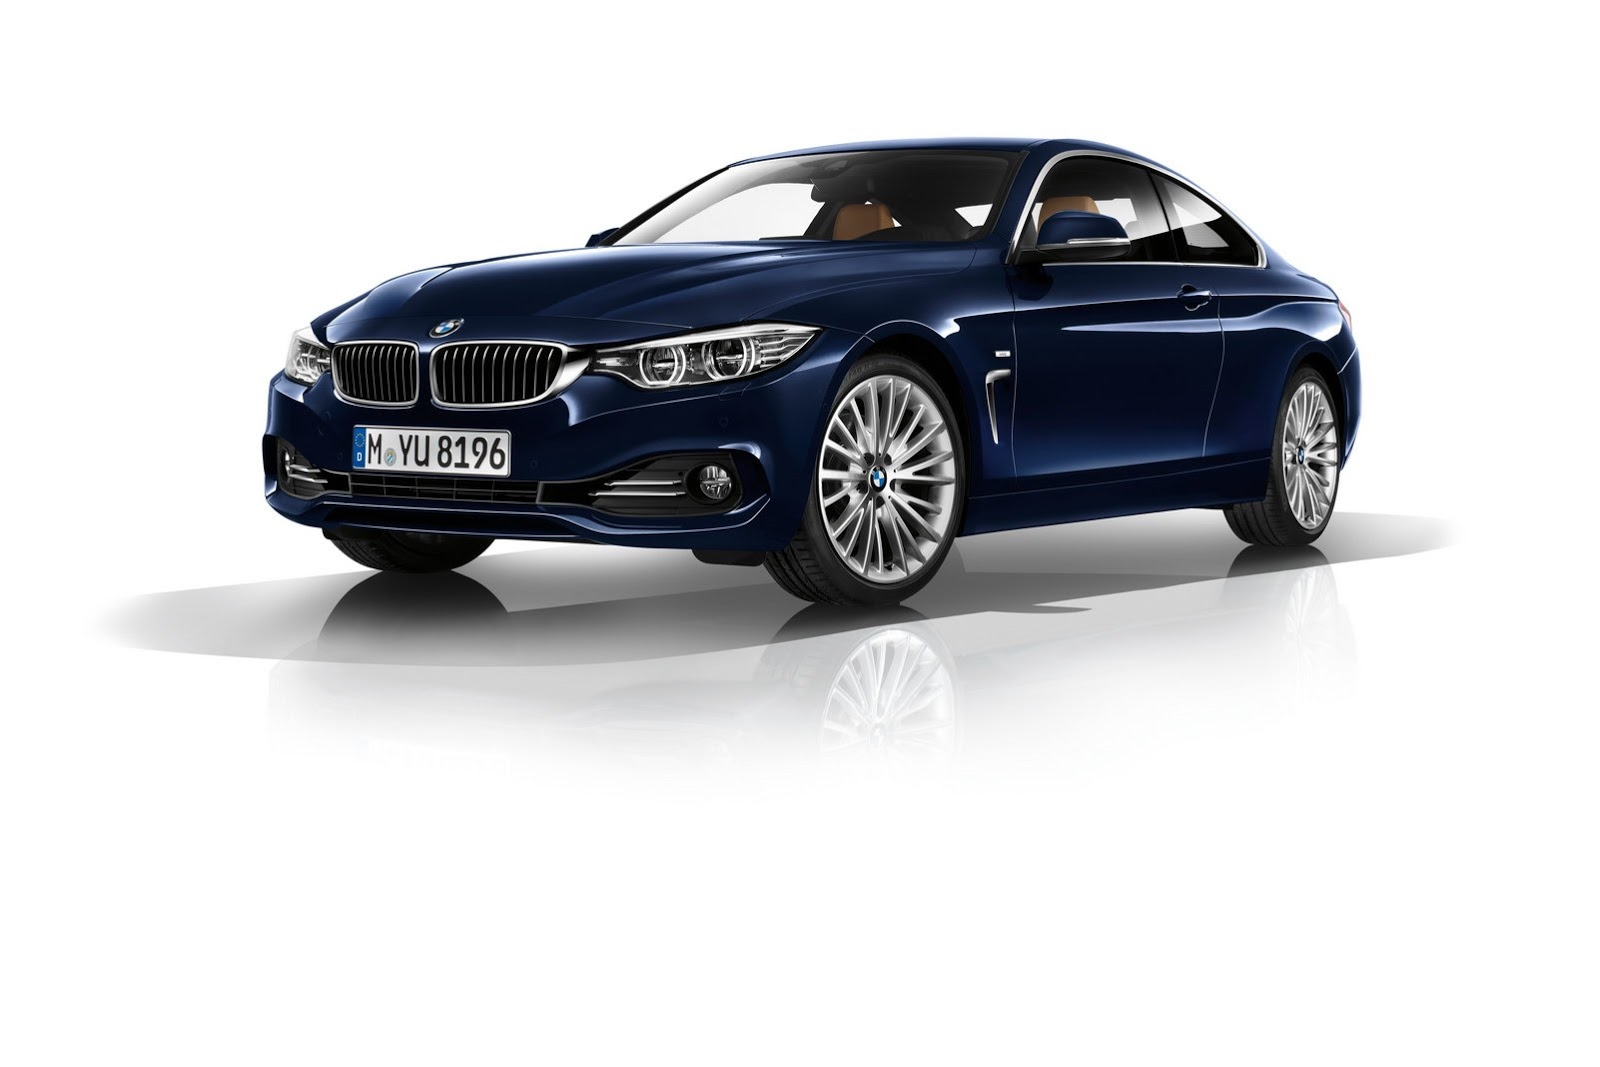 new bmw 4 series unveiled car news luxury sports cars autocar india. Black Bedroom Furniture Sets. Home Design Ideas